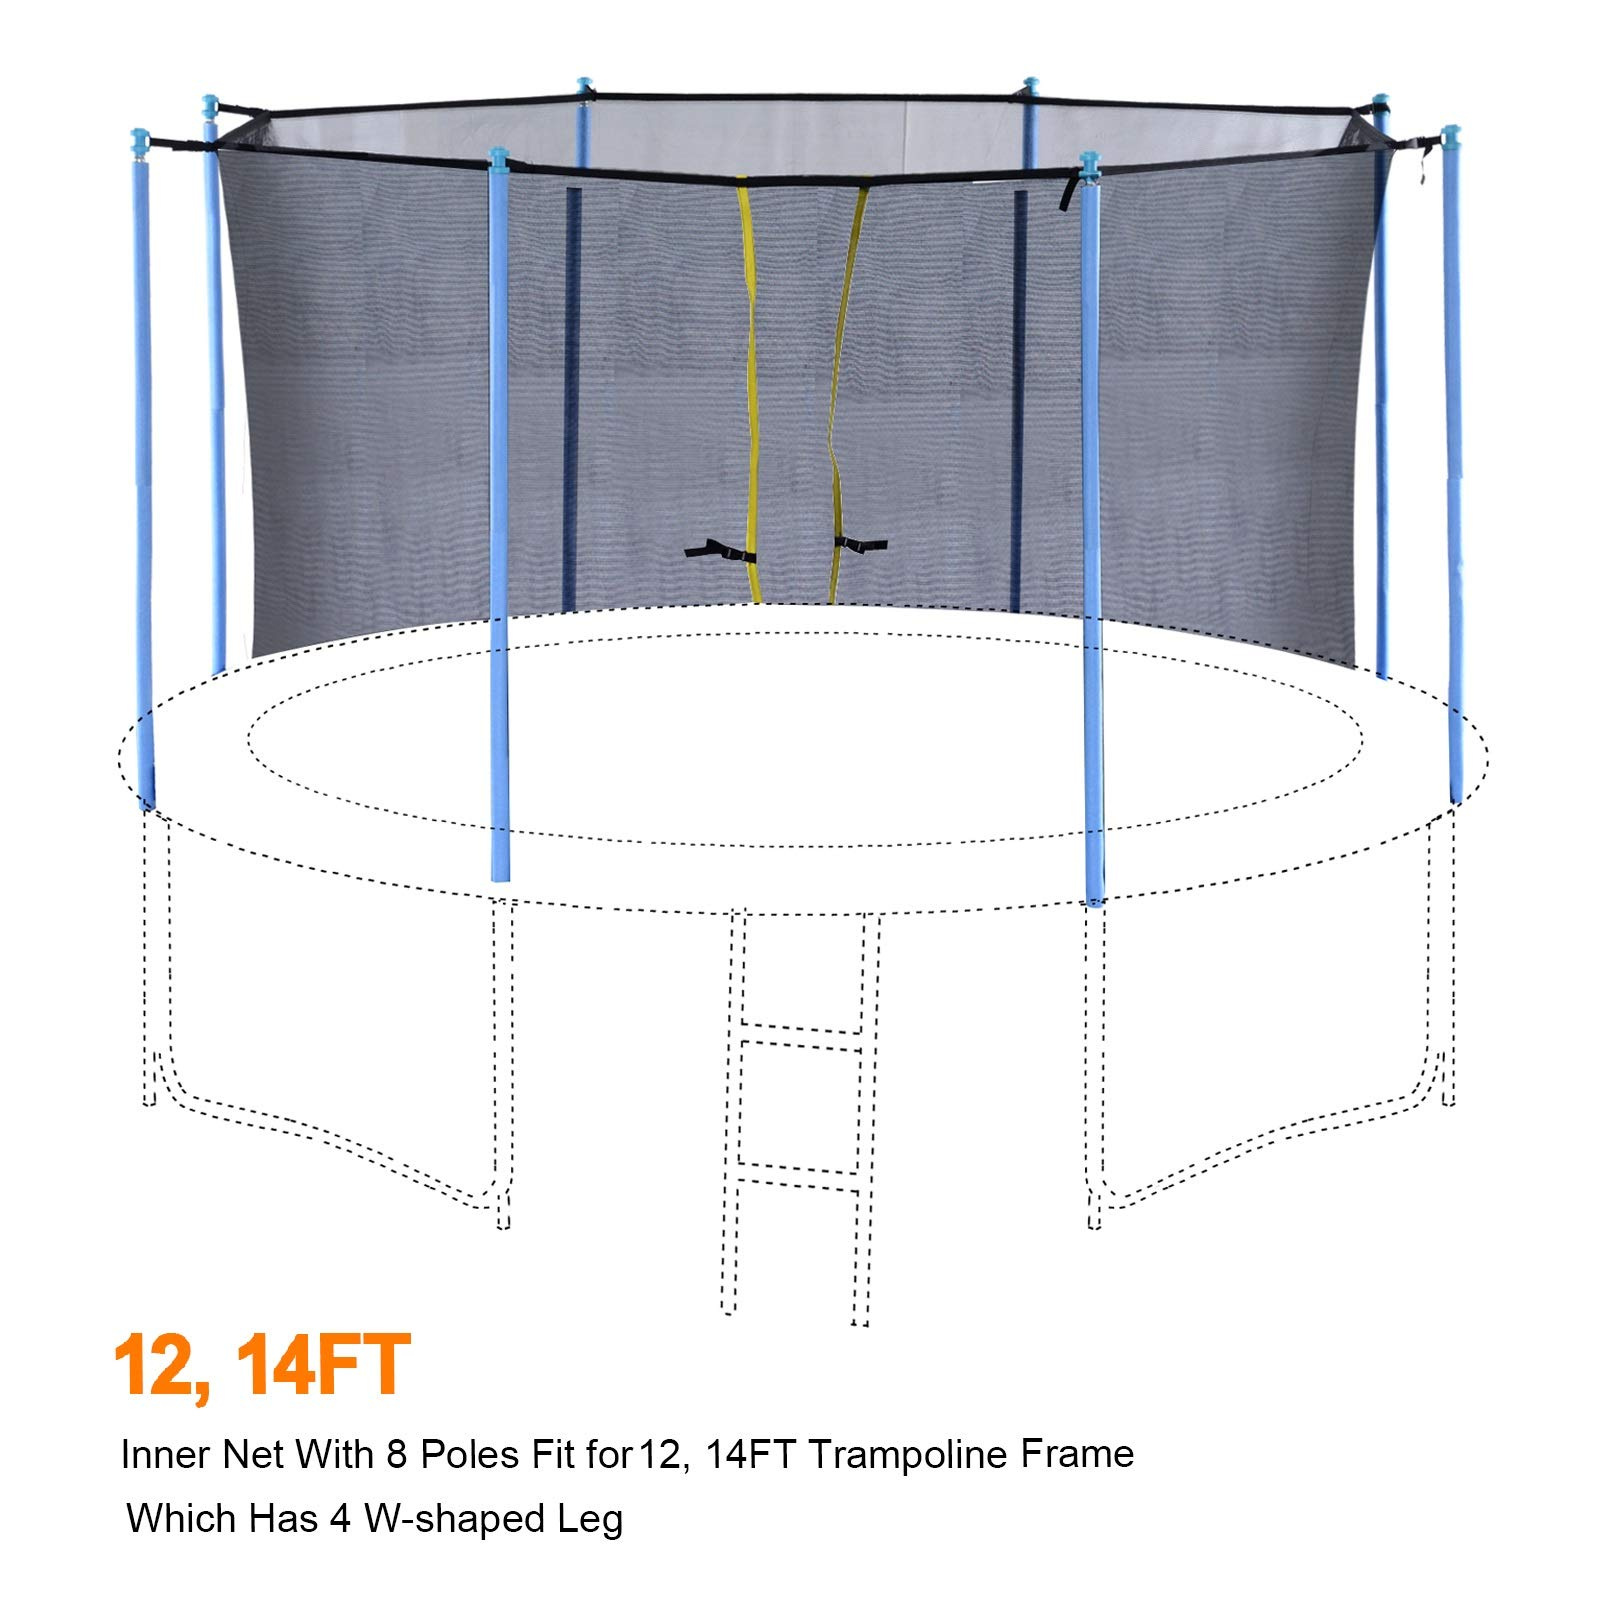 Exacme Inner Enclosure Safety Mesh Net with 6 Poles for C-Series 12 FT Trampoline 6181 by Exacme (Image #2)